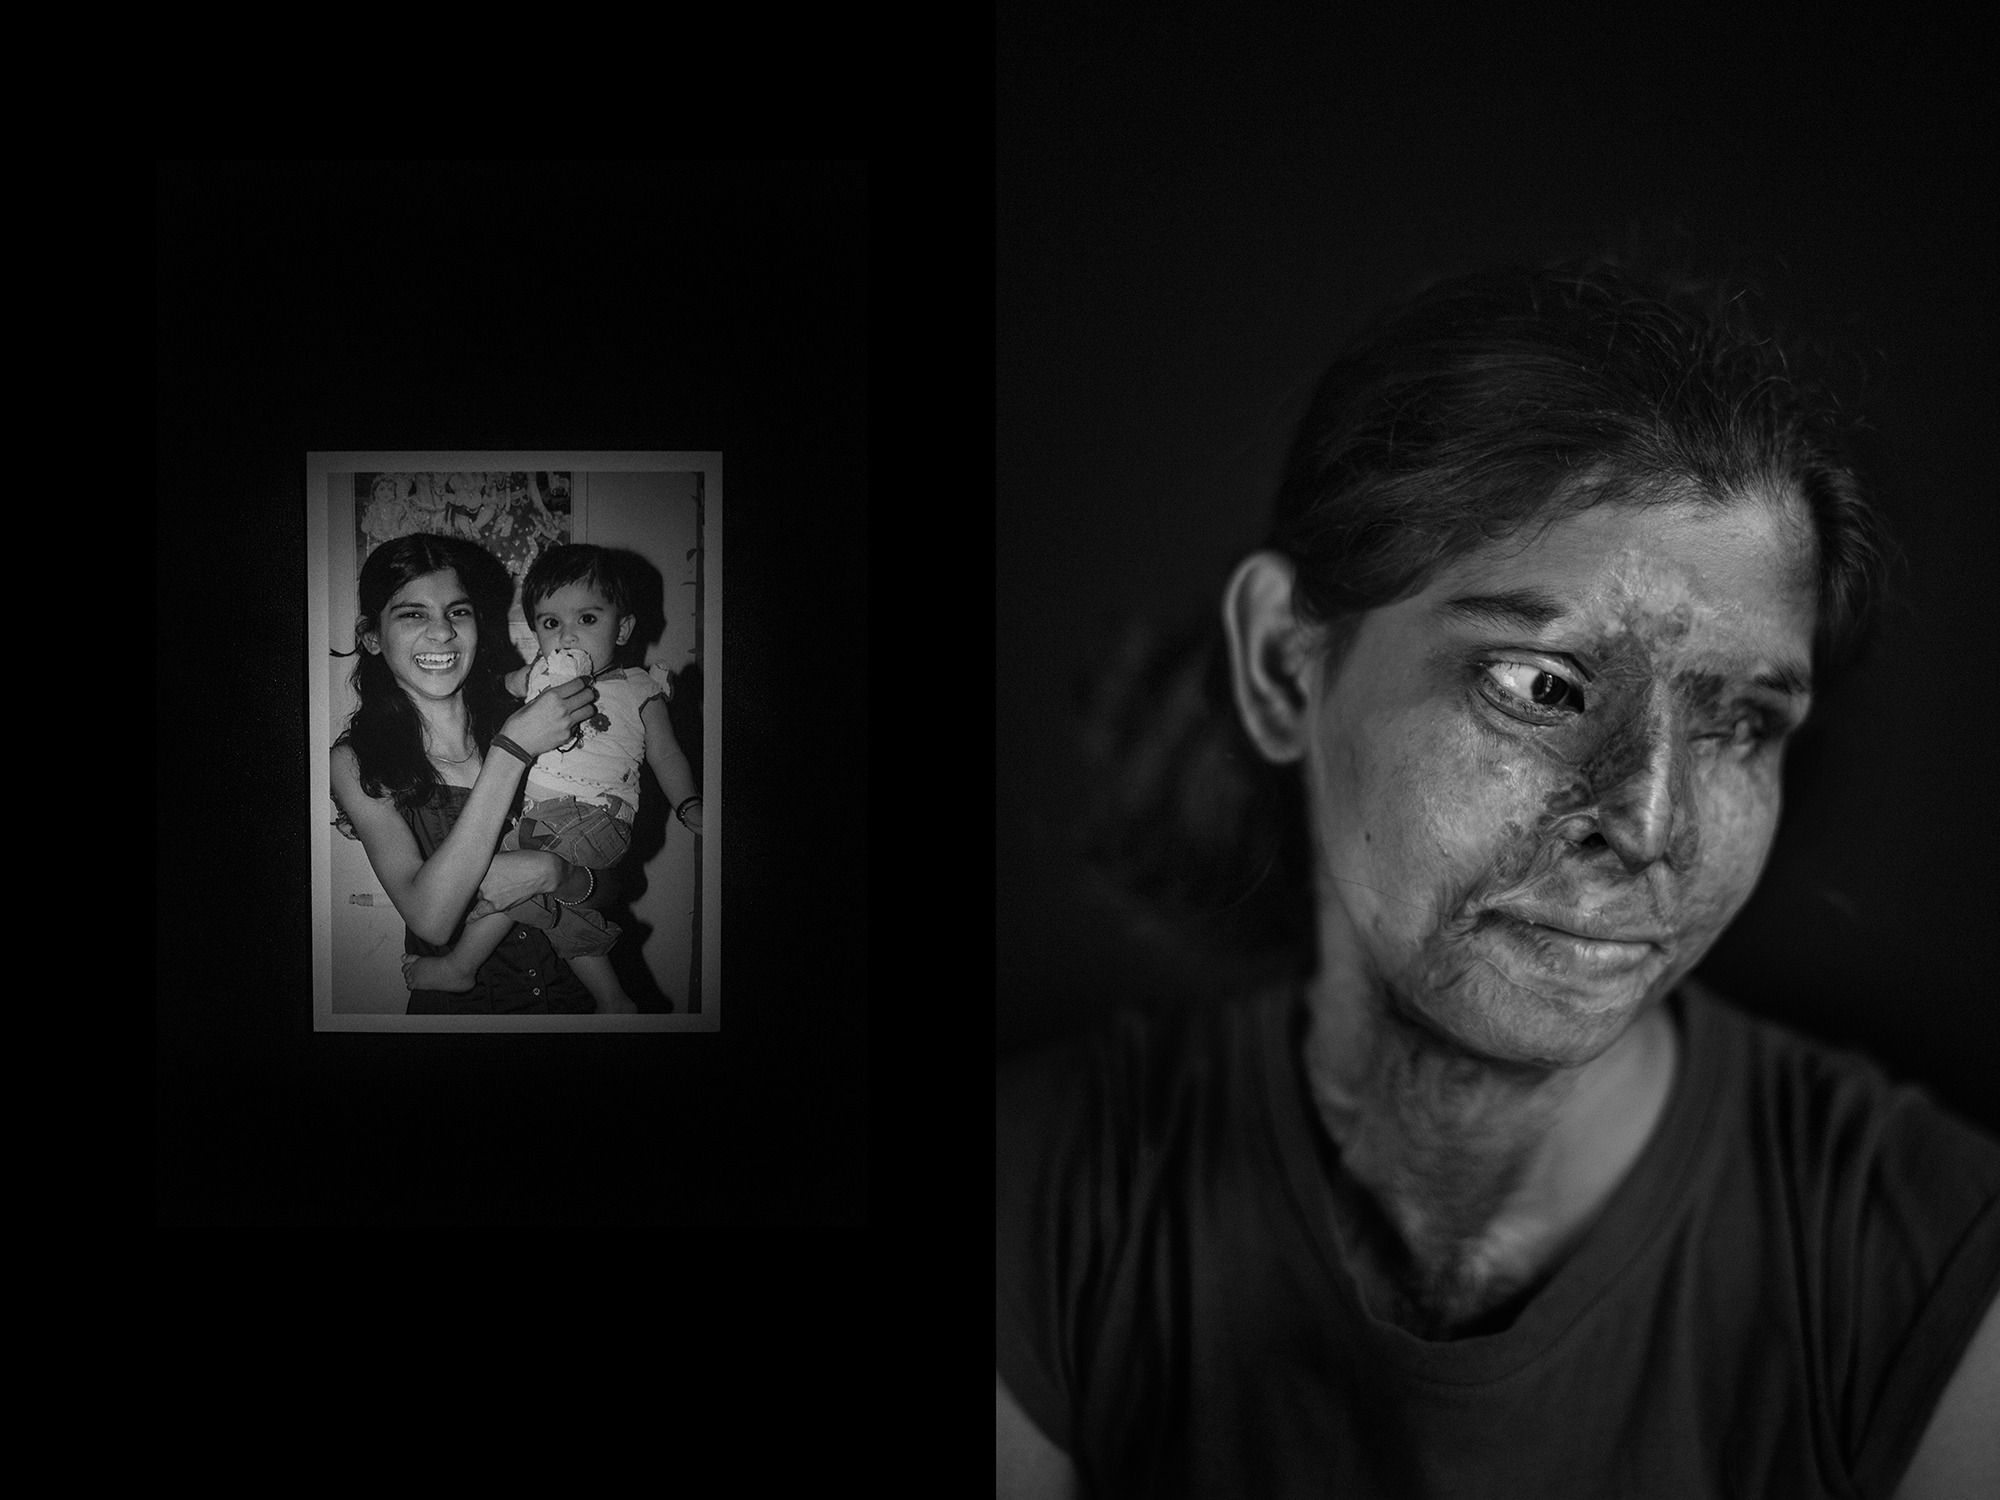 Portraits from the Acid attack survivors in India. Foto: Jordi Pizarro, Spain, Shortlist, Conceptual, Professional, 2015 Sony World Photography Awards